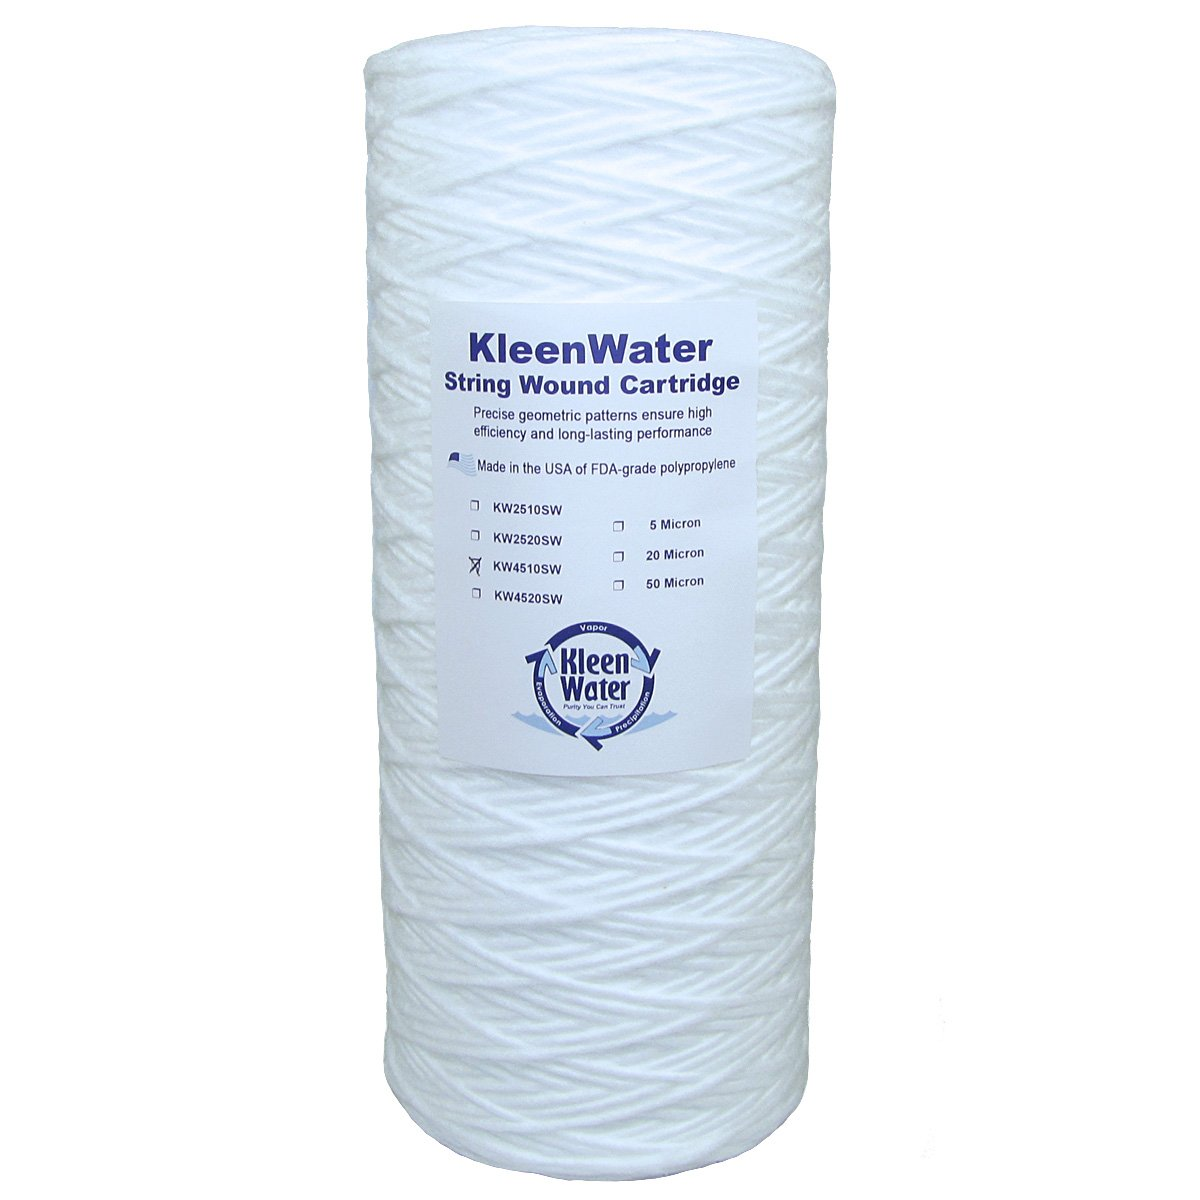 Stainless Steel Water Filter, Large Diameter Water Filter Housing, KleenWater KW4510SW String Wound Sediment Filter, KleenWater KWFLDRG Spare O-Ring by KleenWater